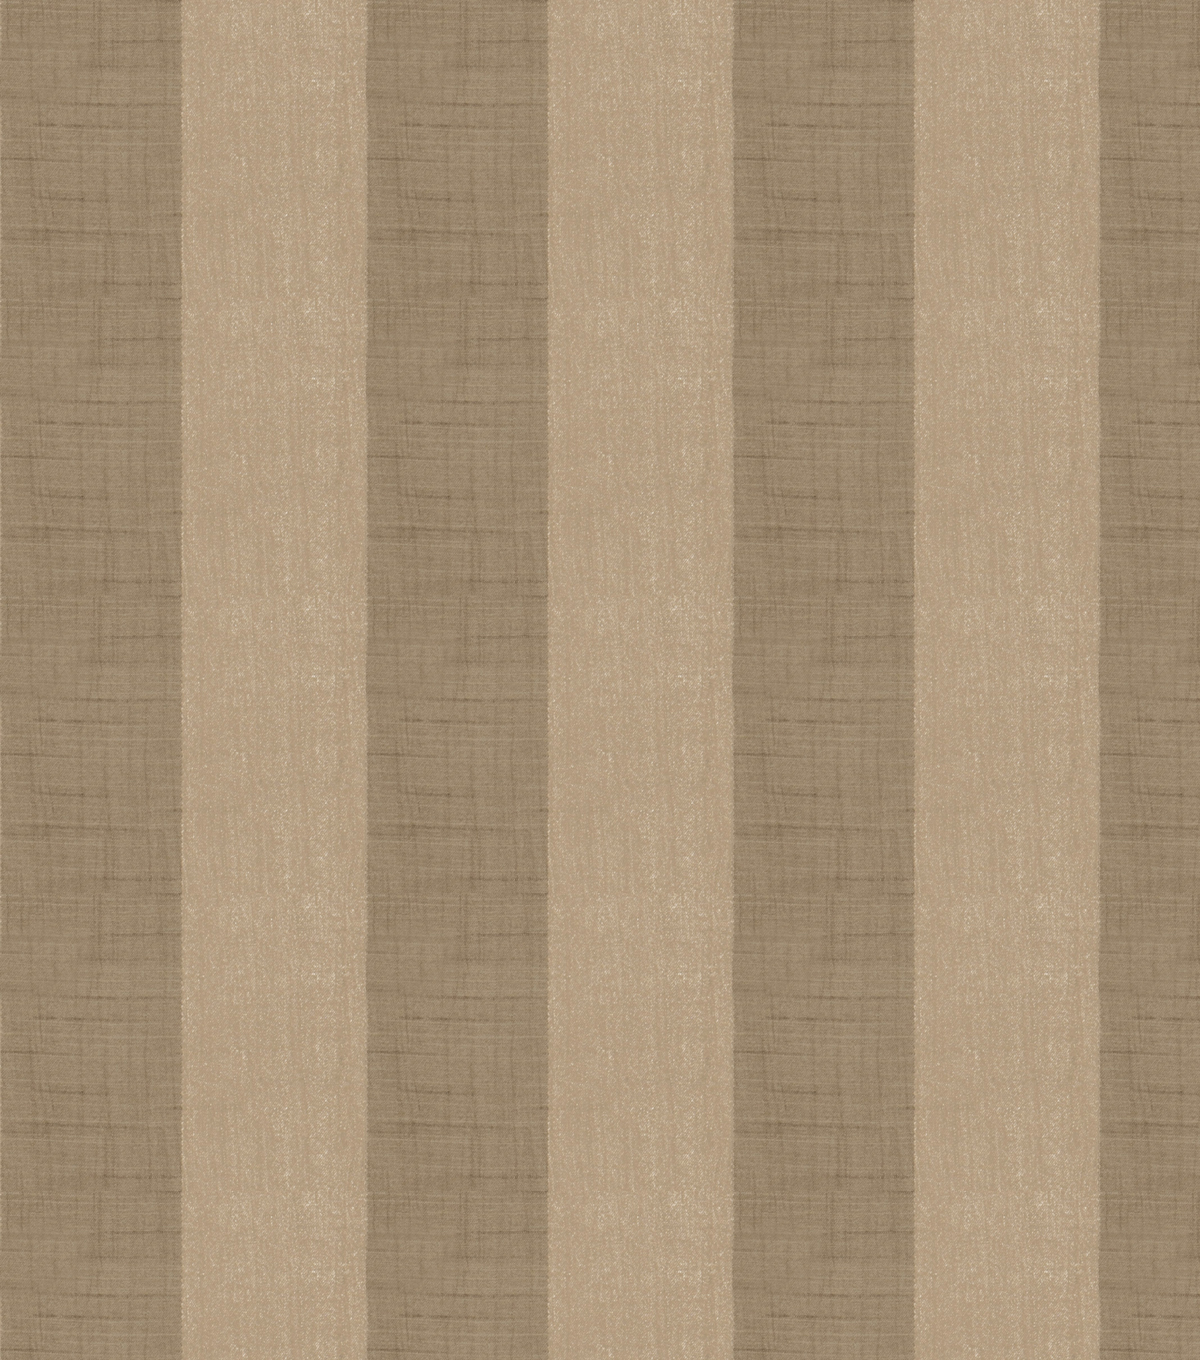 03266 Taupe Swatch